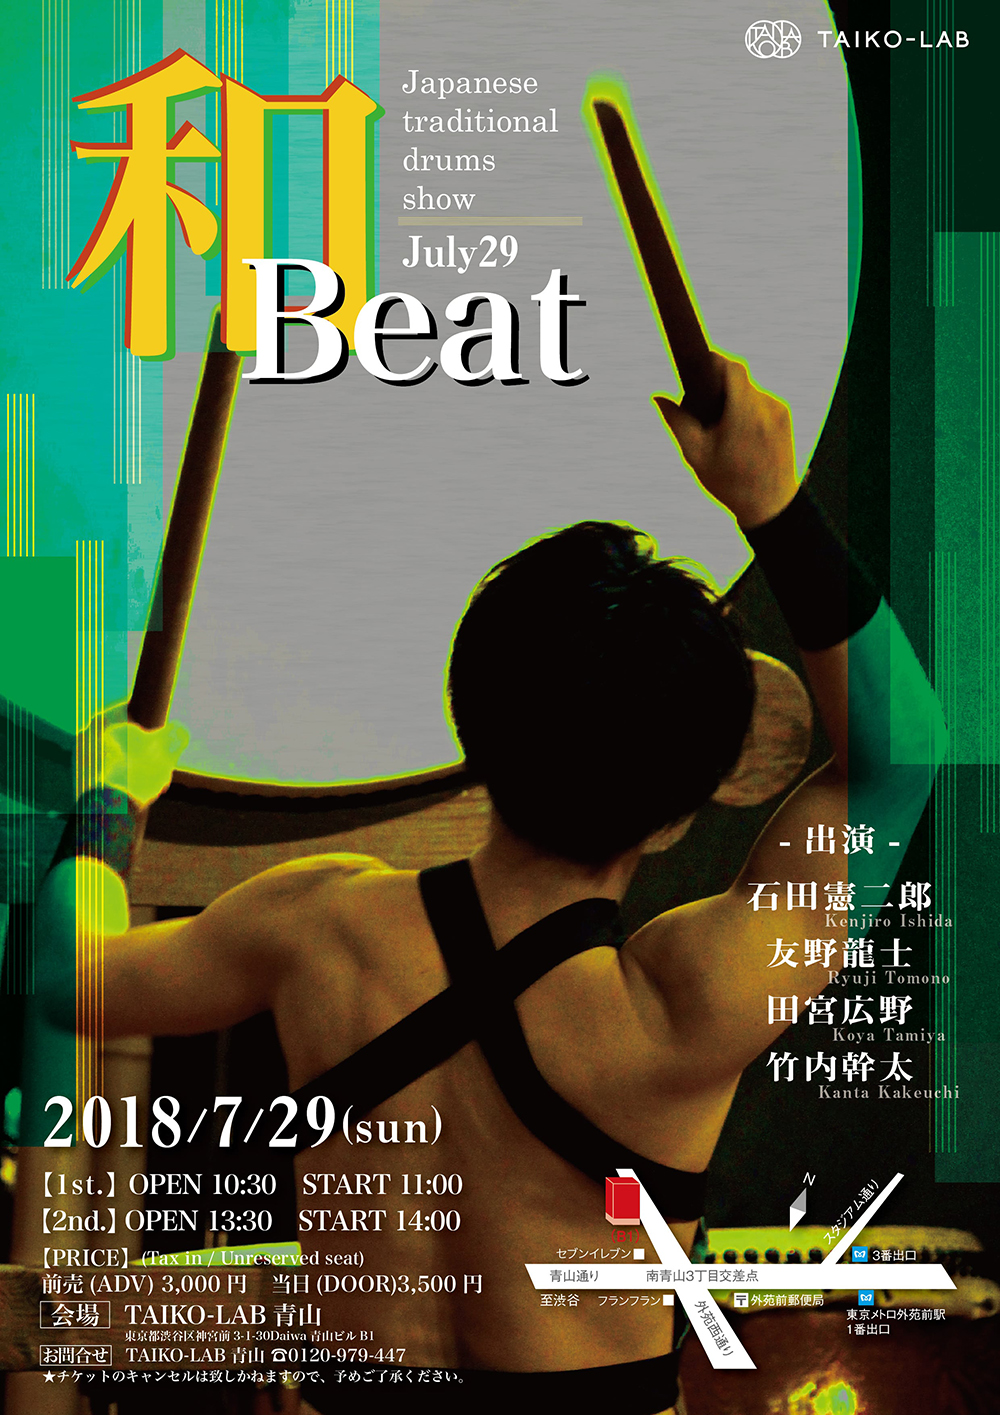 Japanese traditional drums show「和Beat」